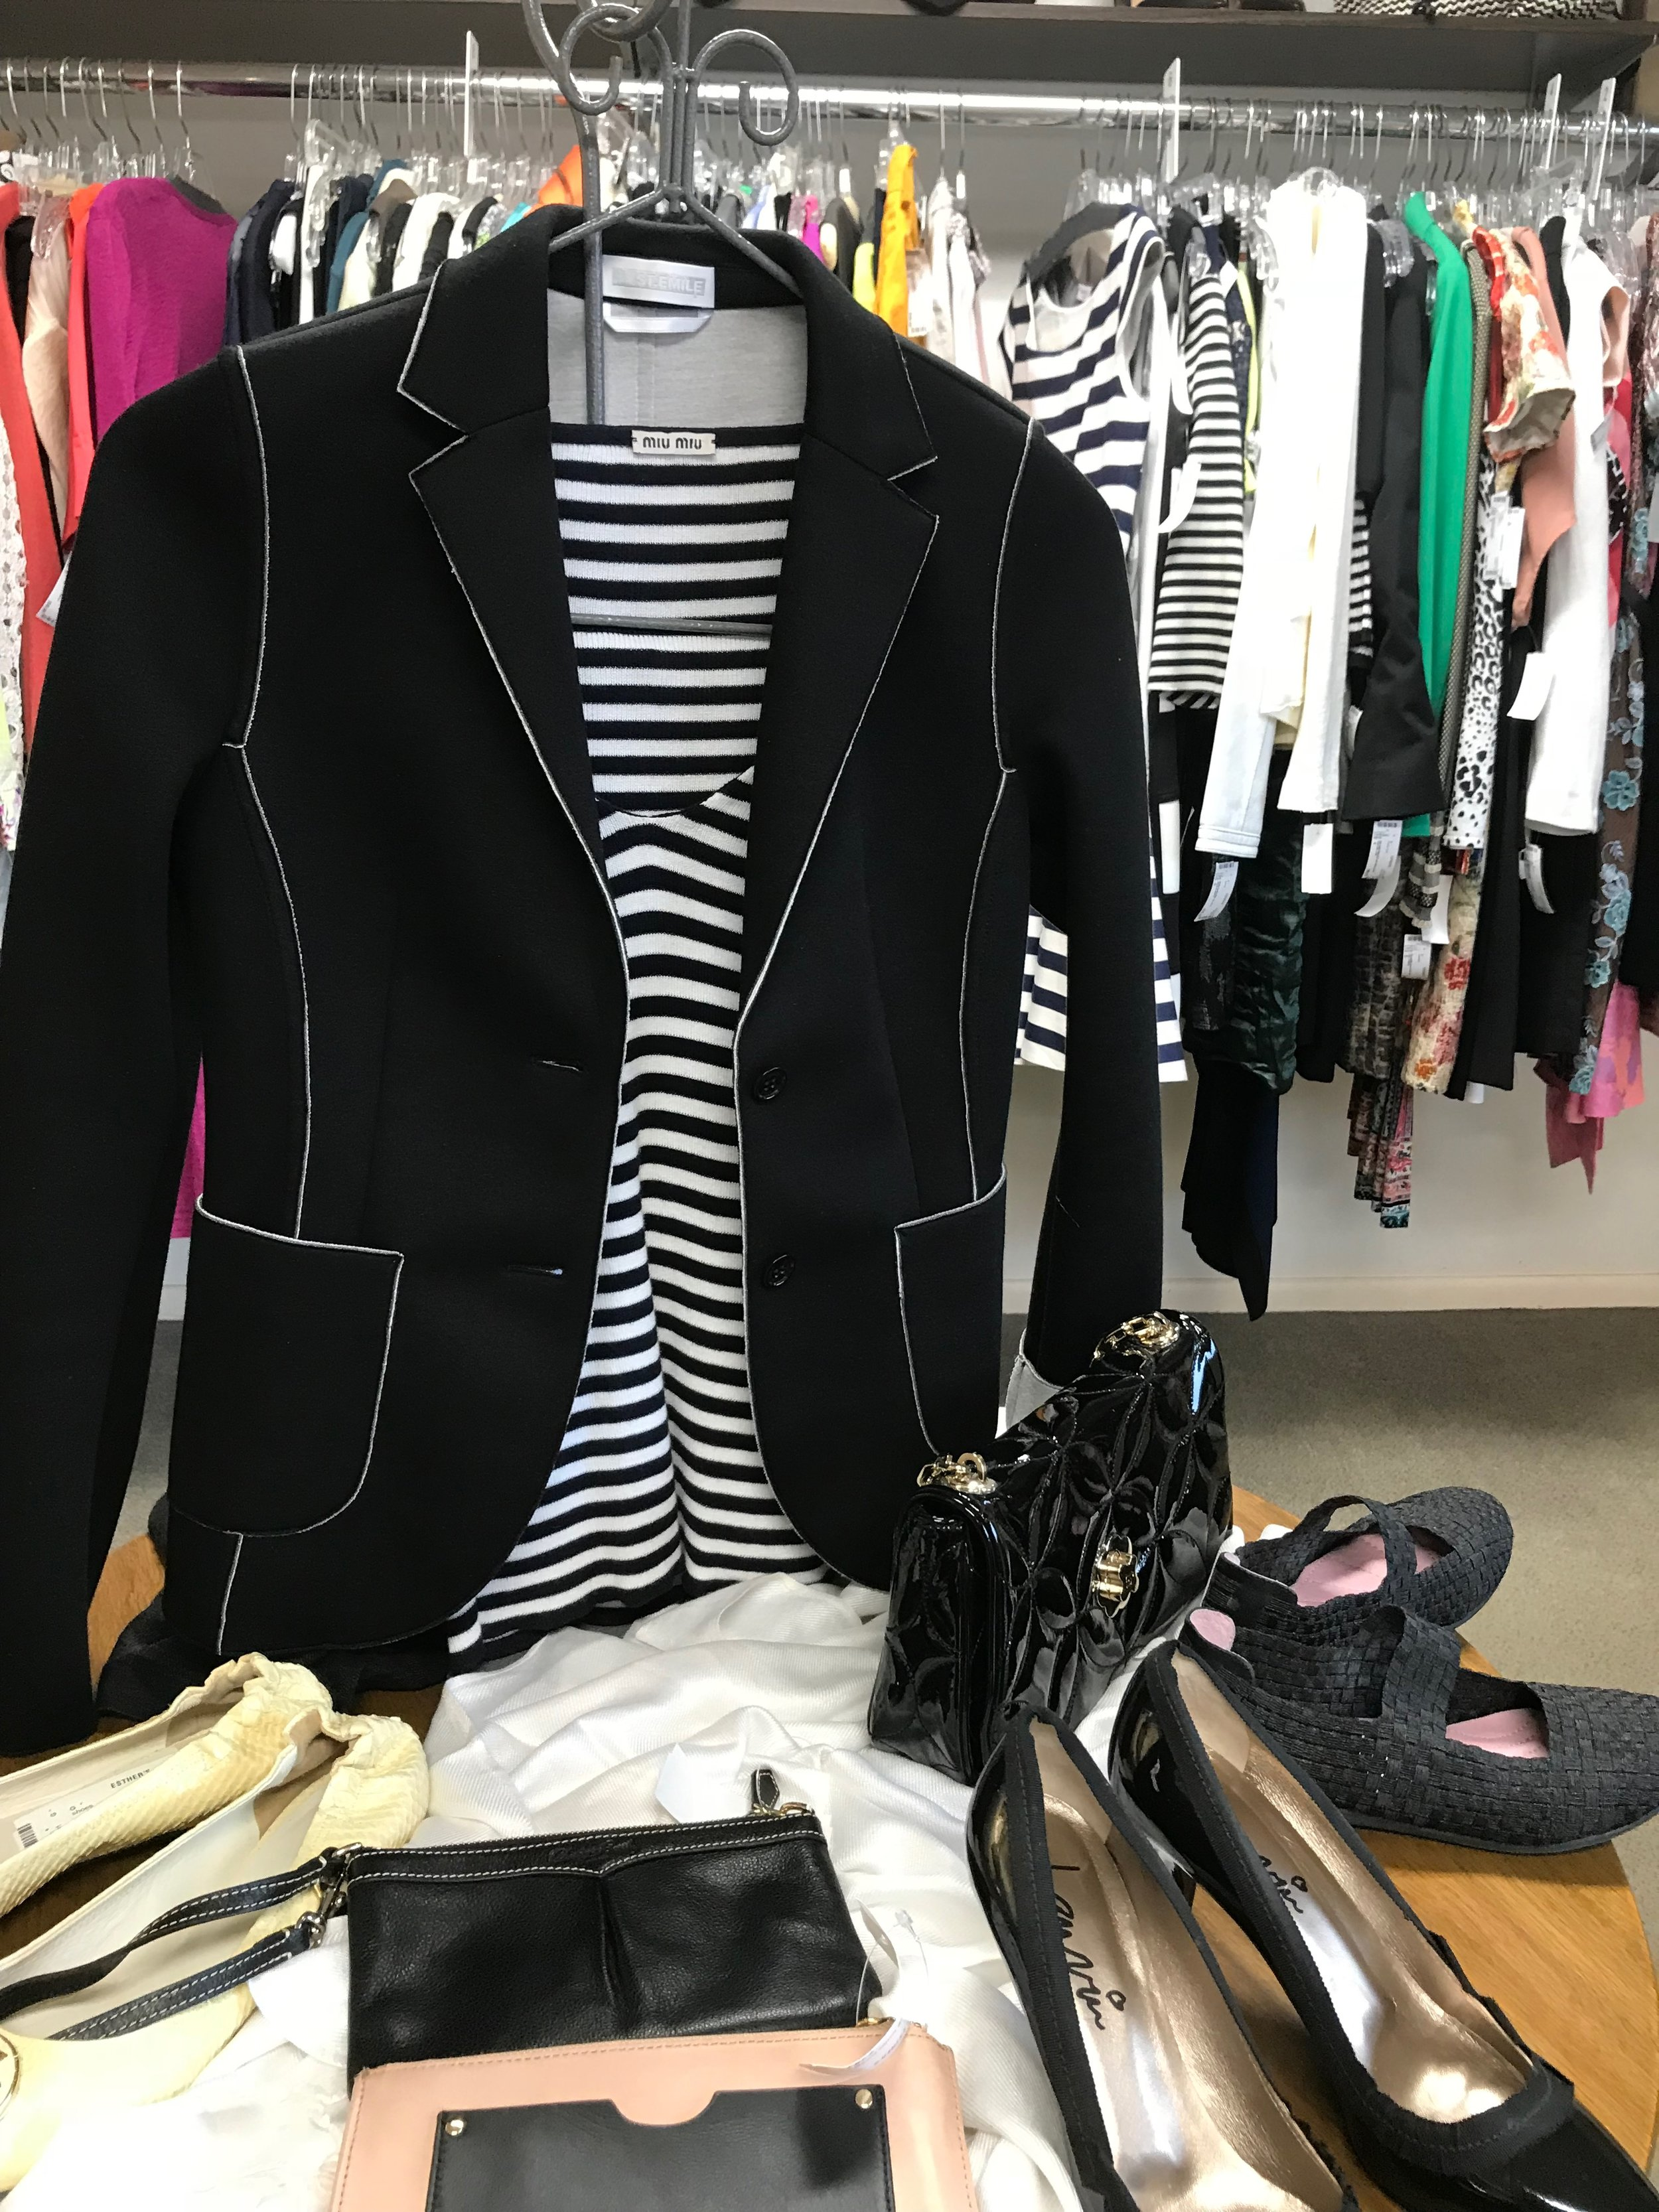 Nautical chic from Miu Miu, Lanvin and others at Omaha's Esther's.